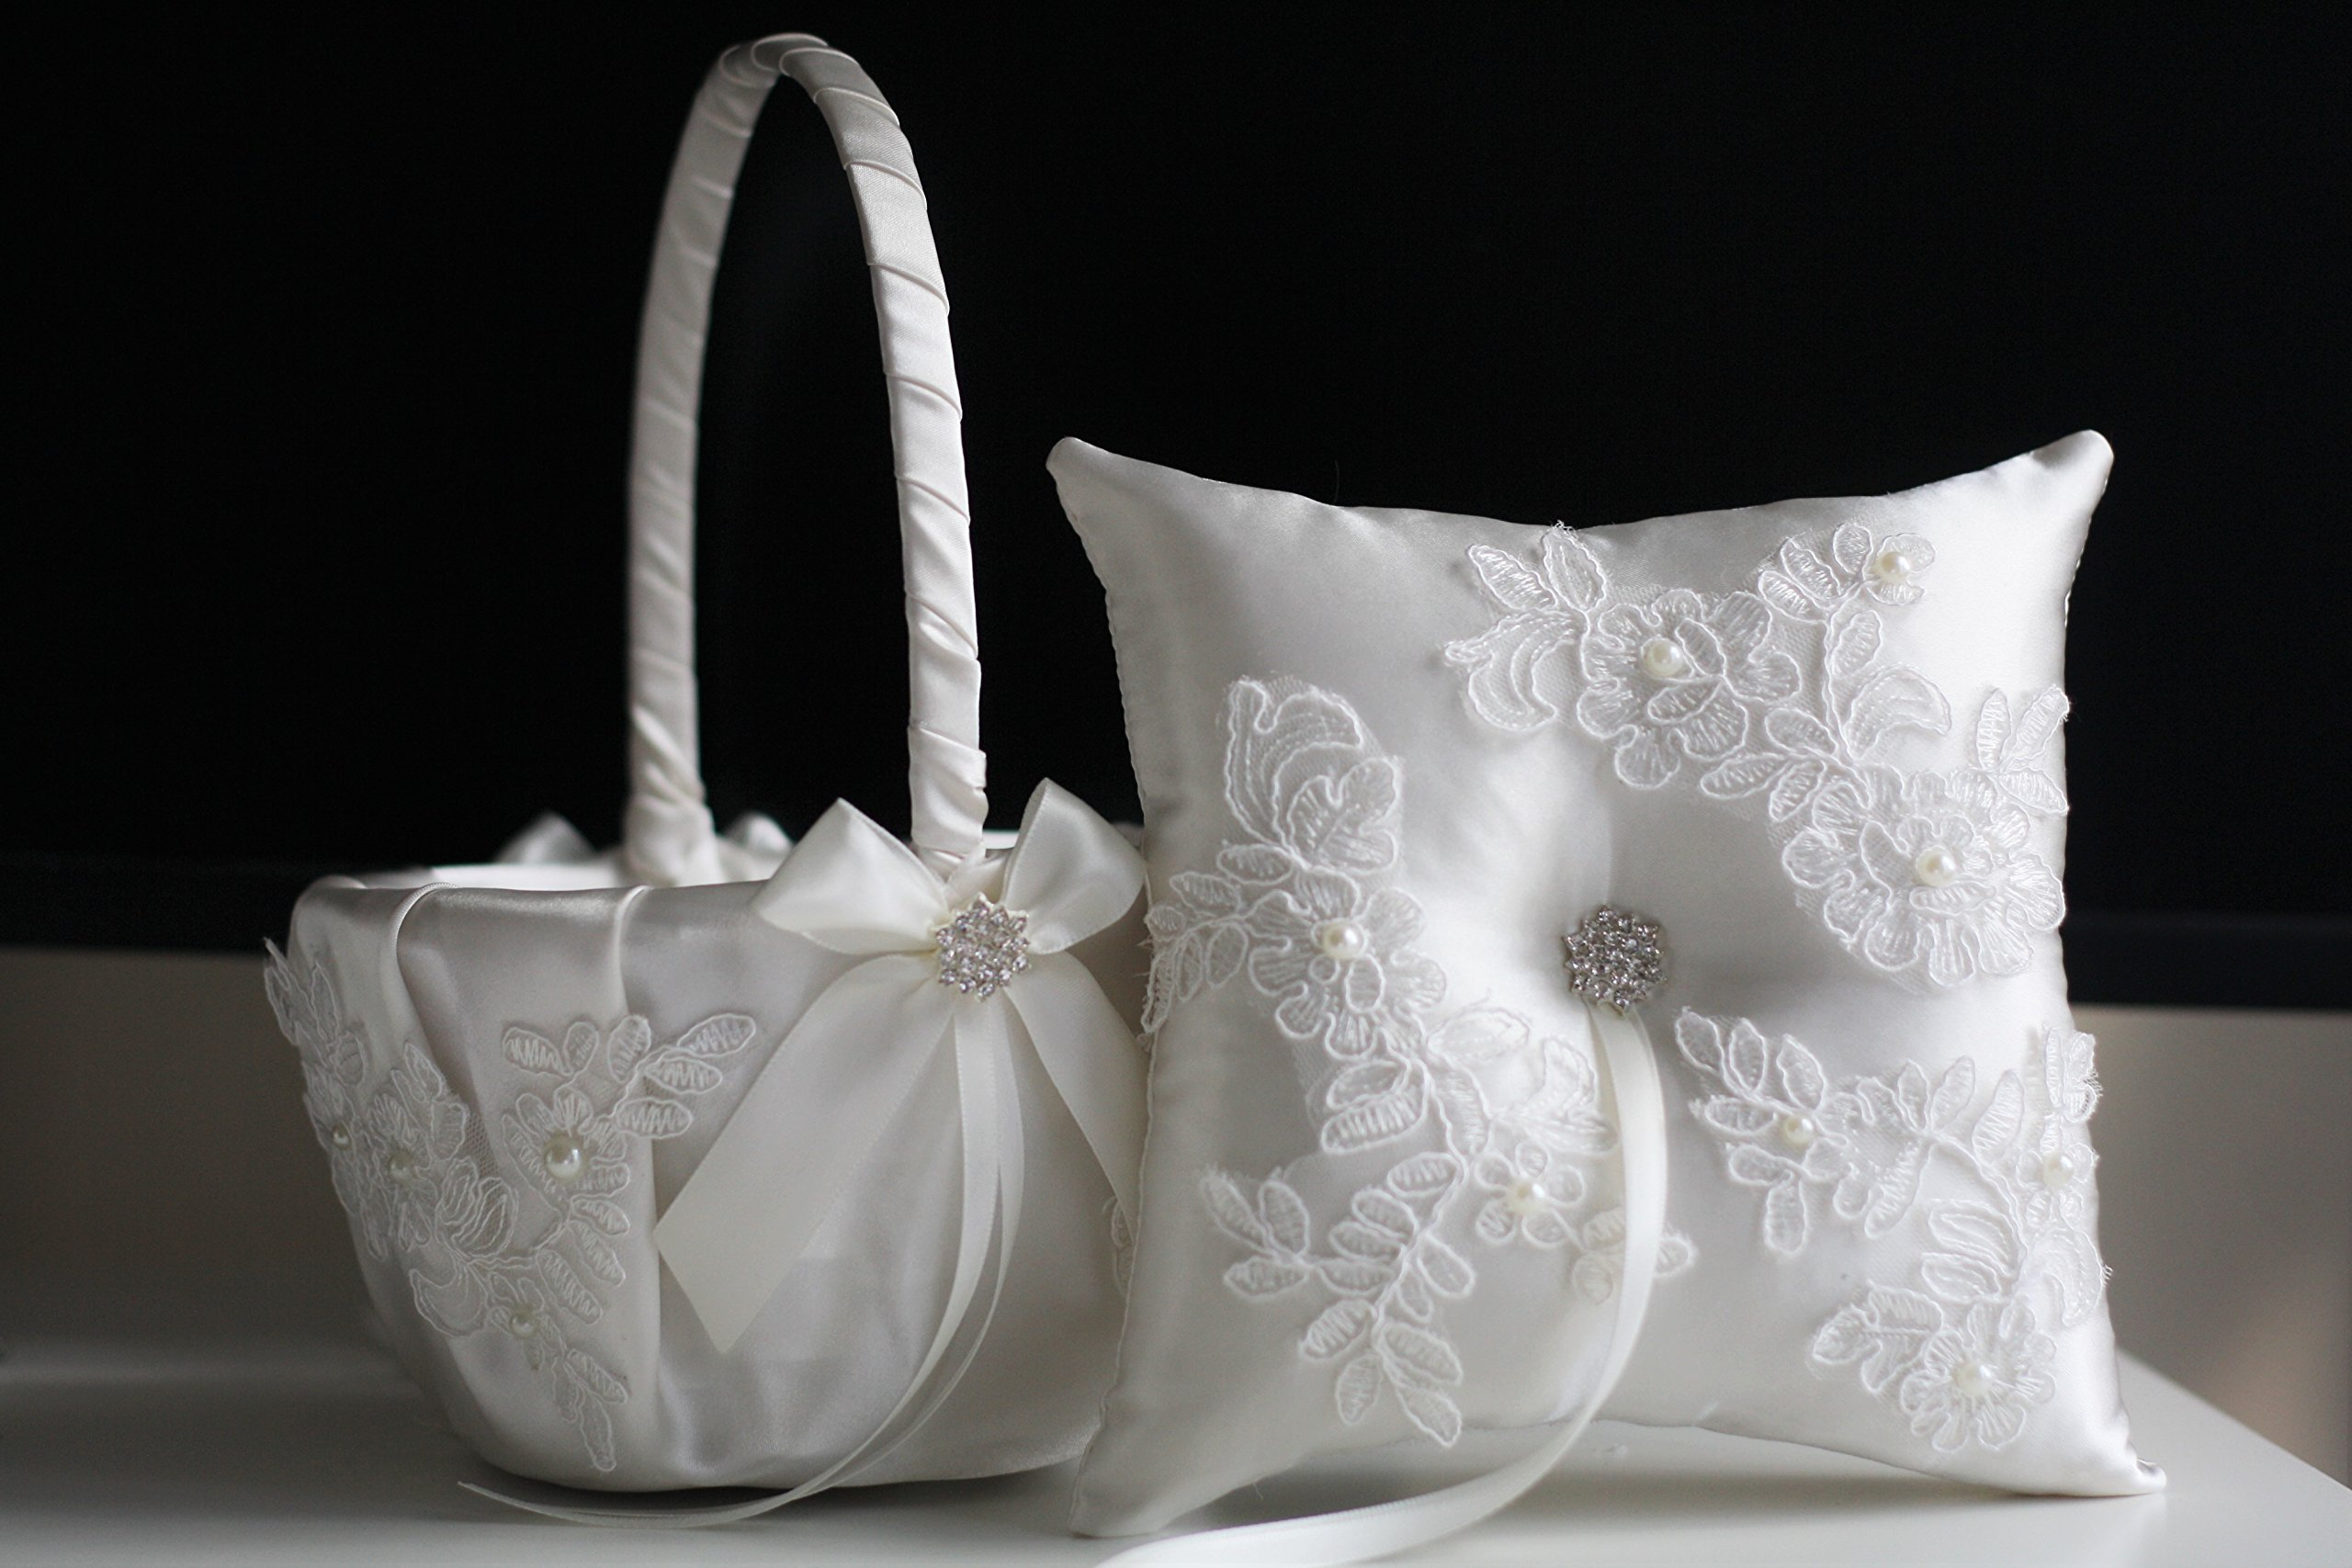 White Ring Bearer Pillow & Wedding Flower Girl Basket Set | Alex Emotions | Lace Applique Collection by Alex Emotions